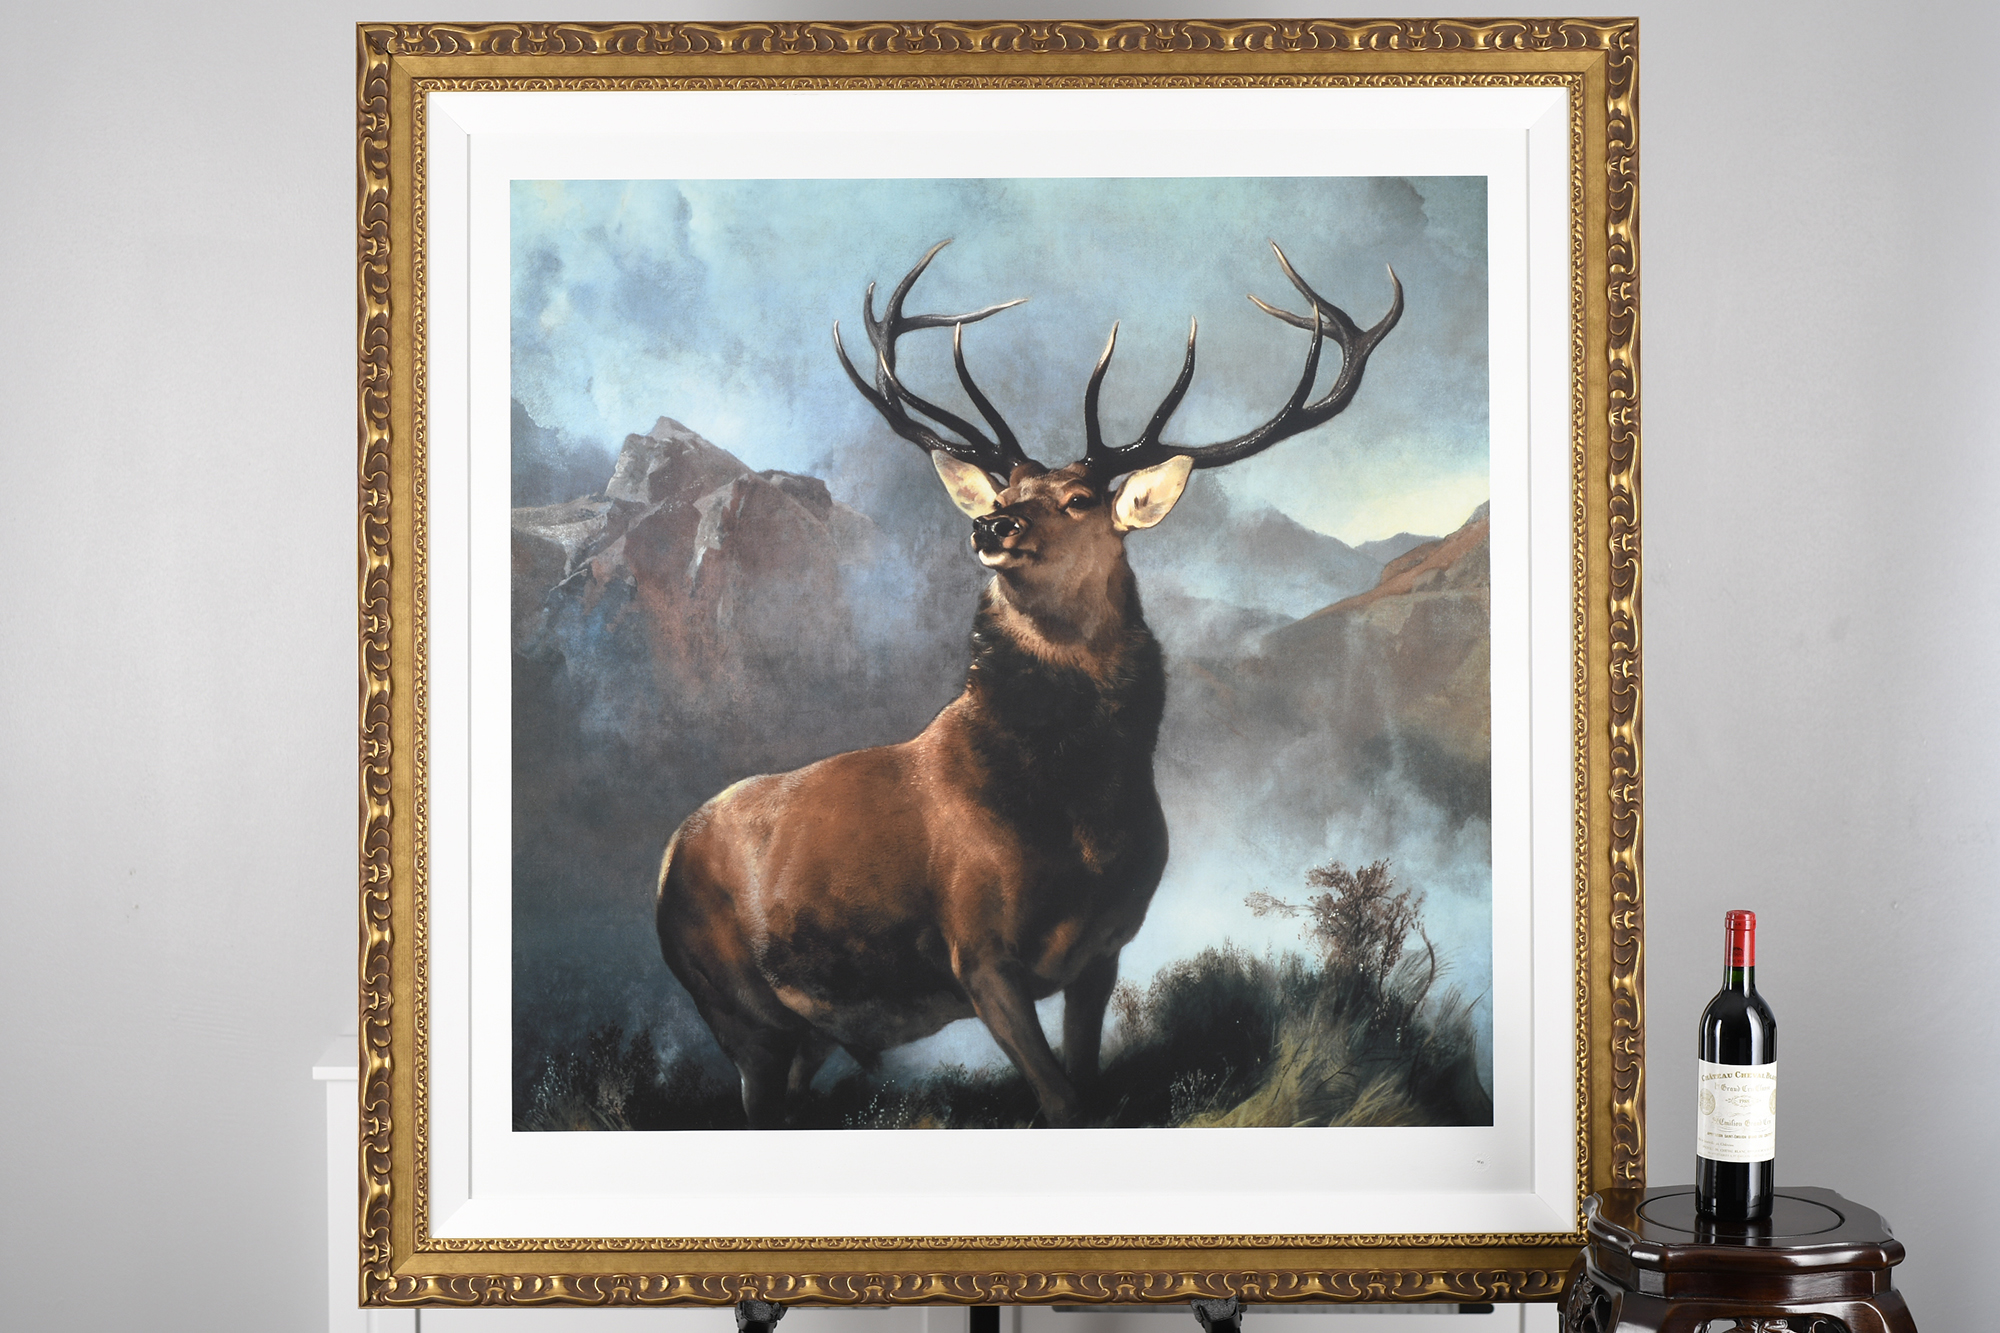 """Edwin Landseer Limited Edition """"Monarch of the Glen"""" 1 of only 85 Worldwide. - Image 6 of 9"""